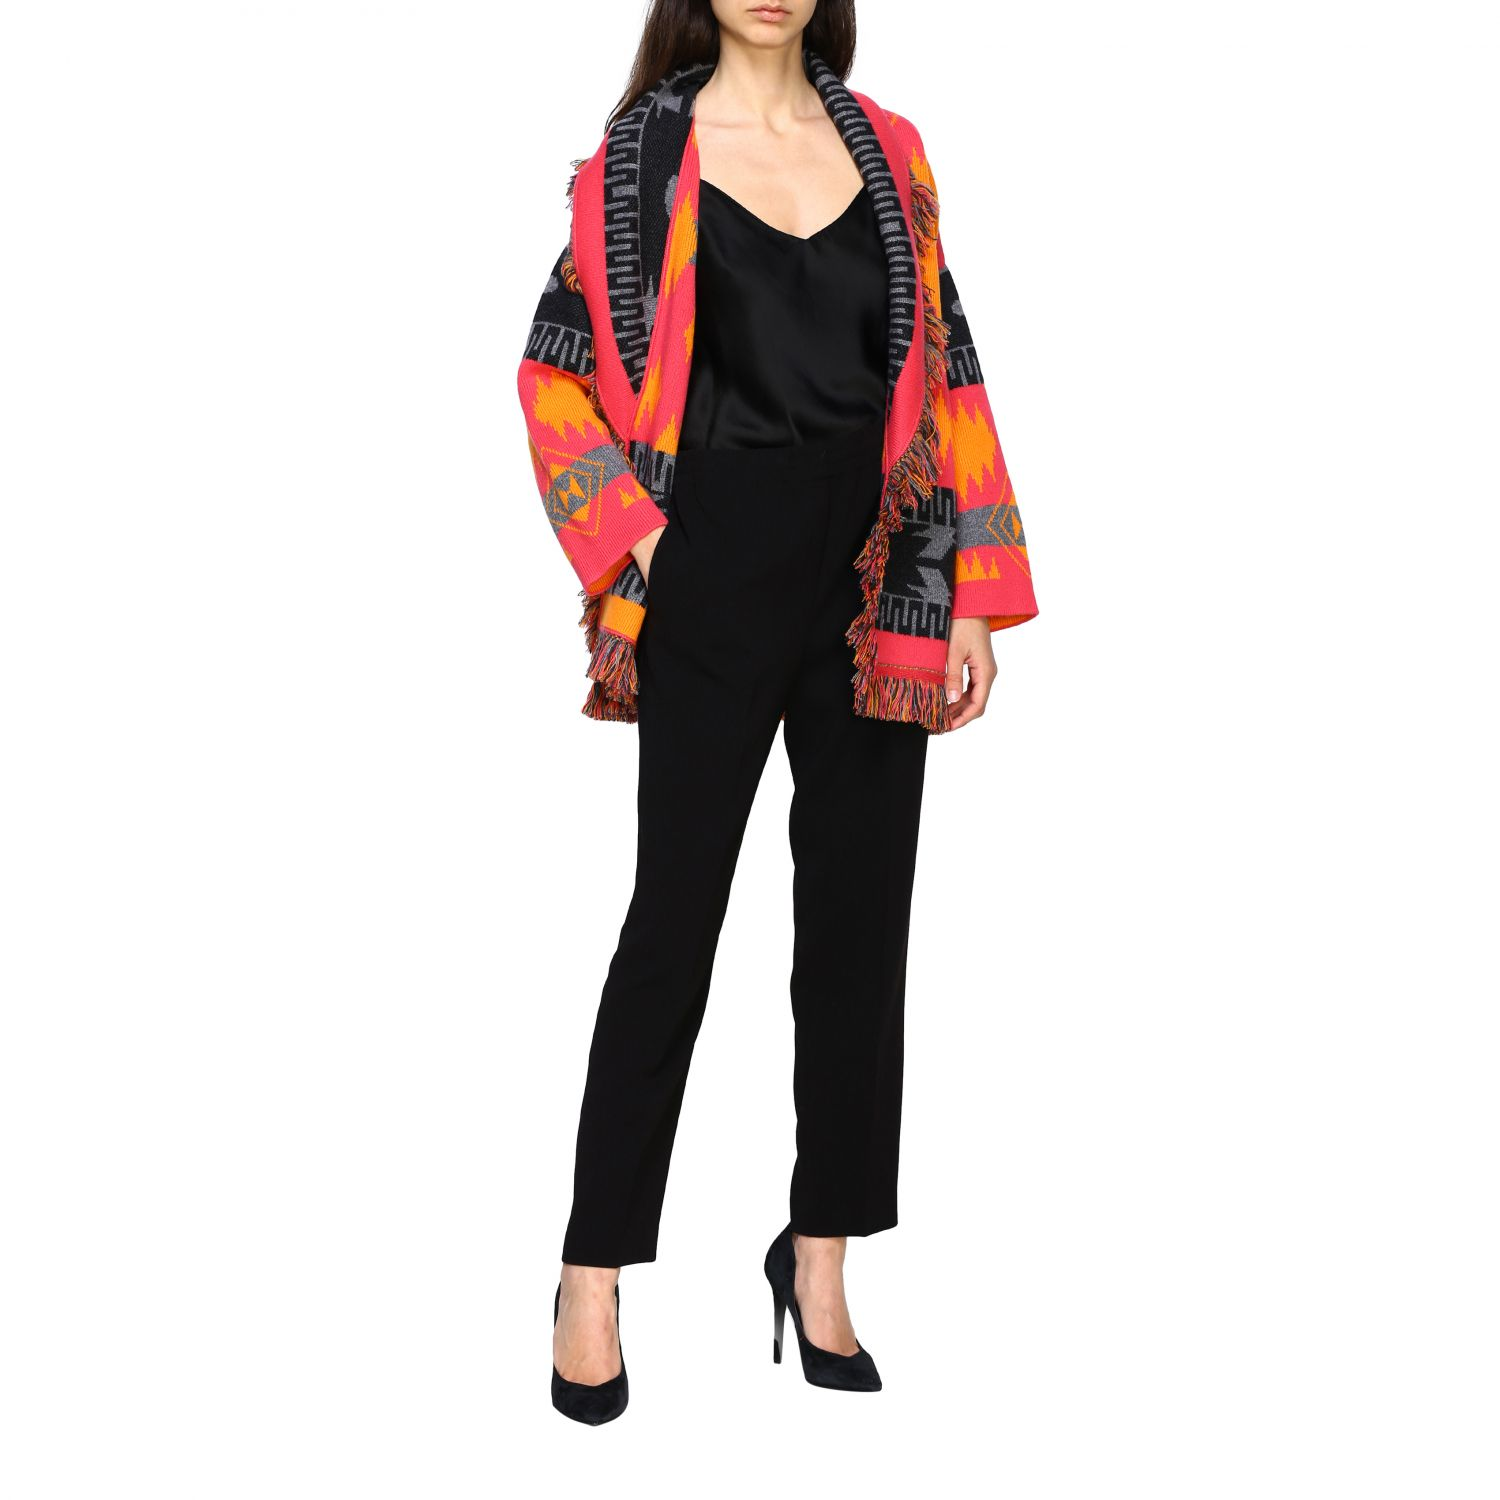 Cardigan Alanui: Sweater women Alanui multicolor 2